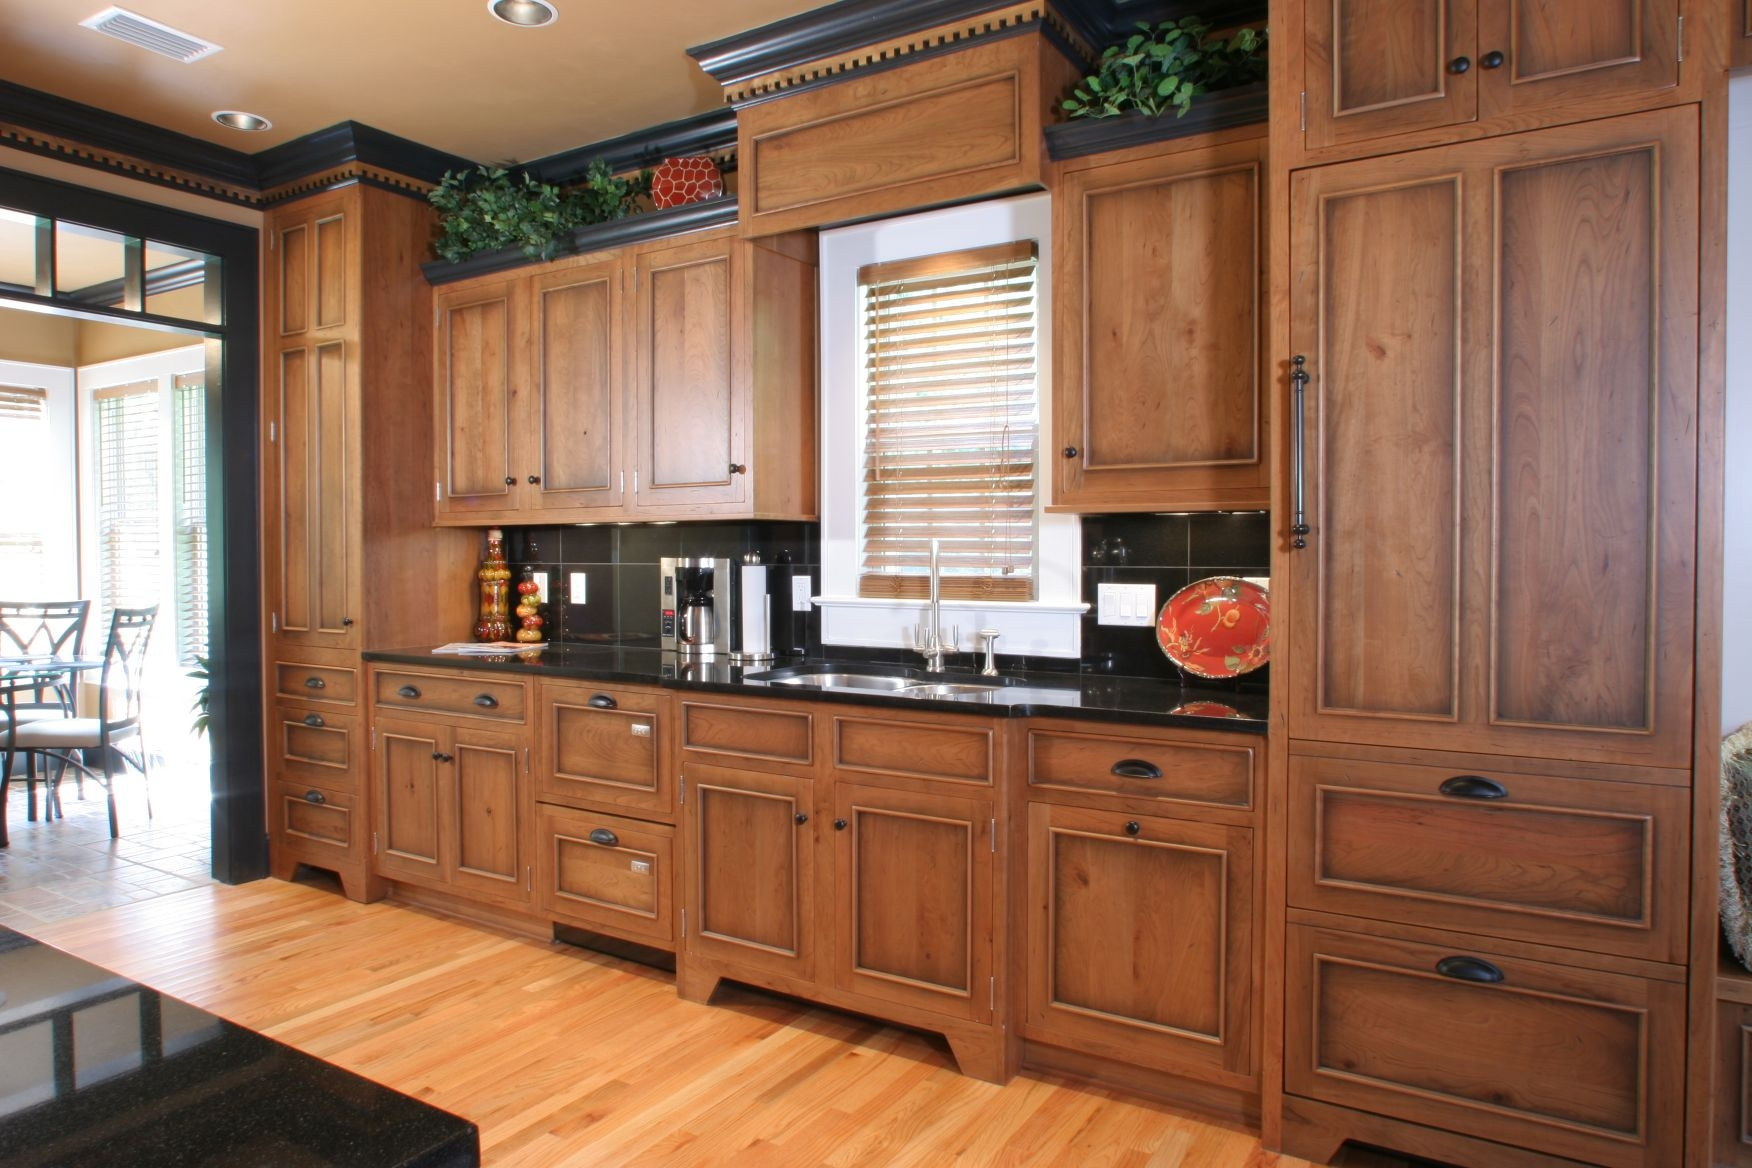 Updating Wooden Kitchen Cabinets